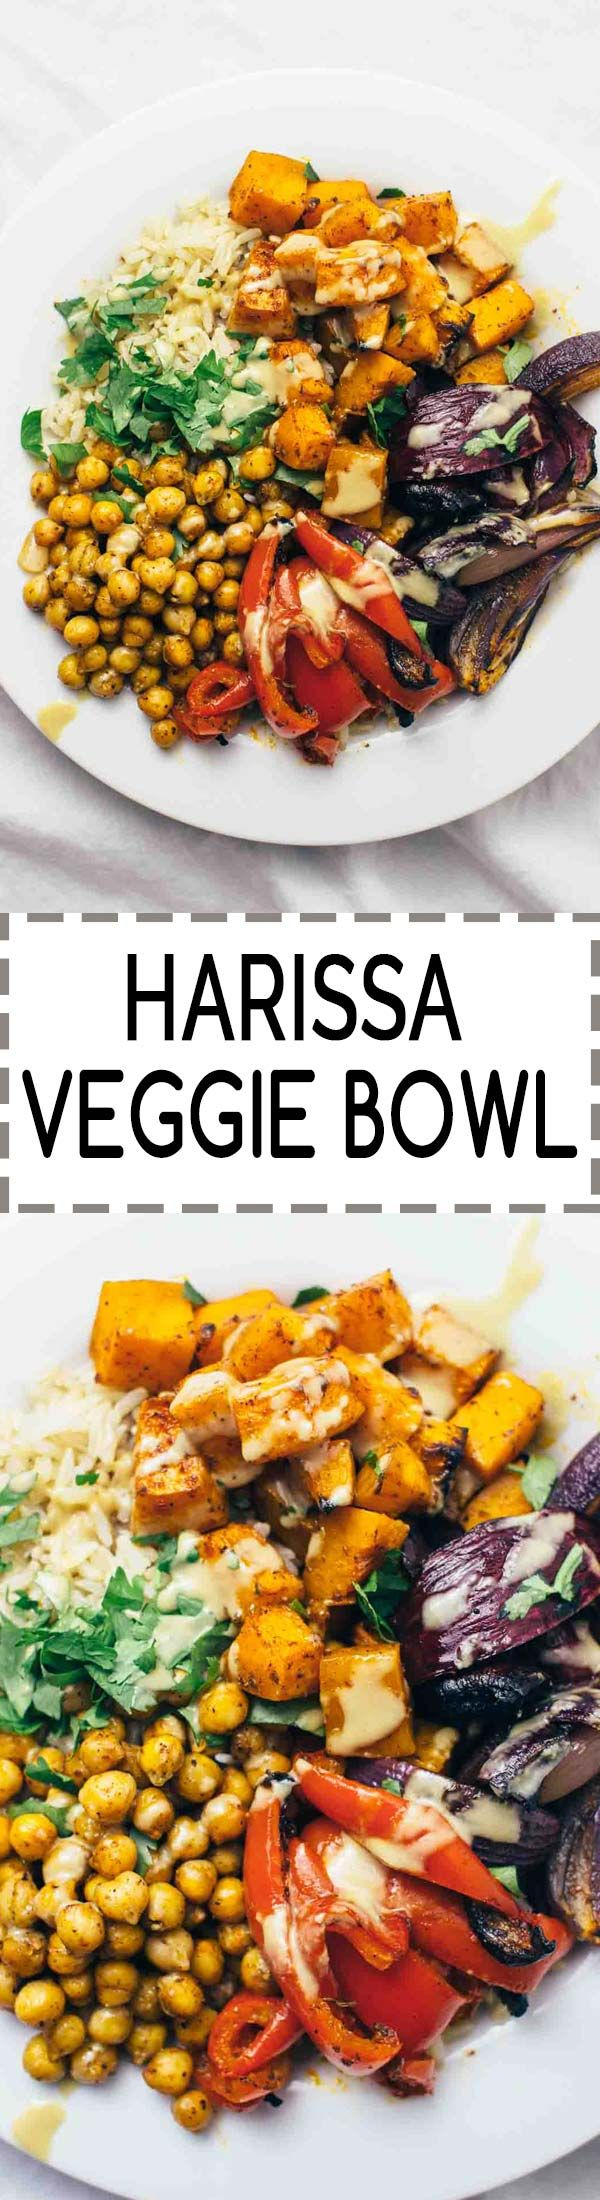 Harissa Veggie Bowl! Vegan, vegetarian, gluten-free power bowl that's perfect for an easy weeknight dinner. Head over to the blog for the recipe!